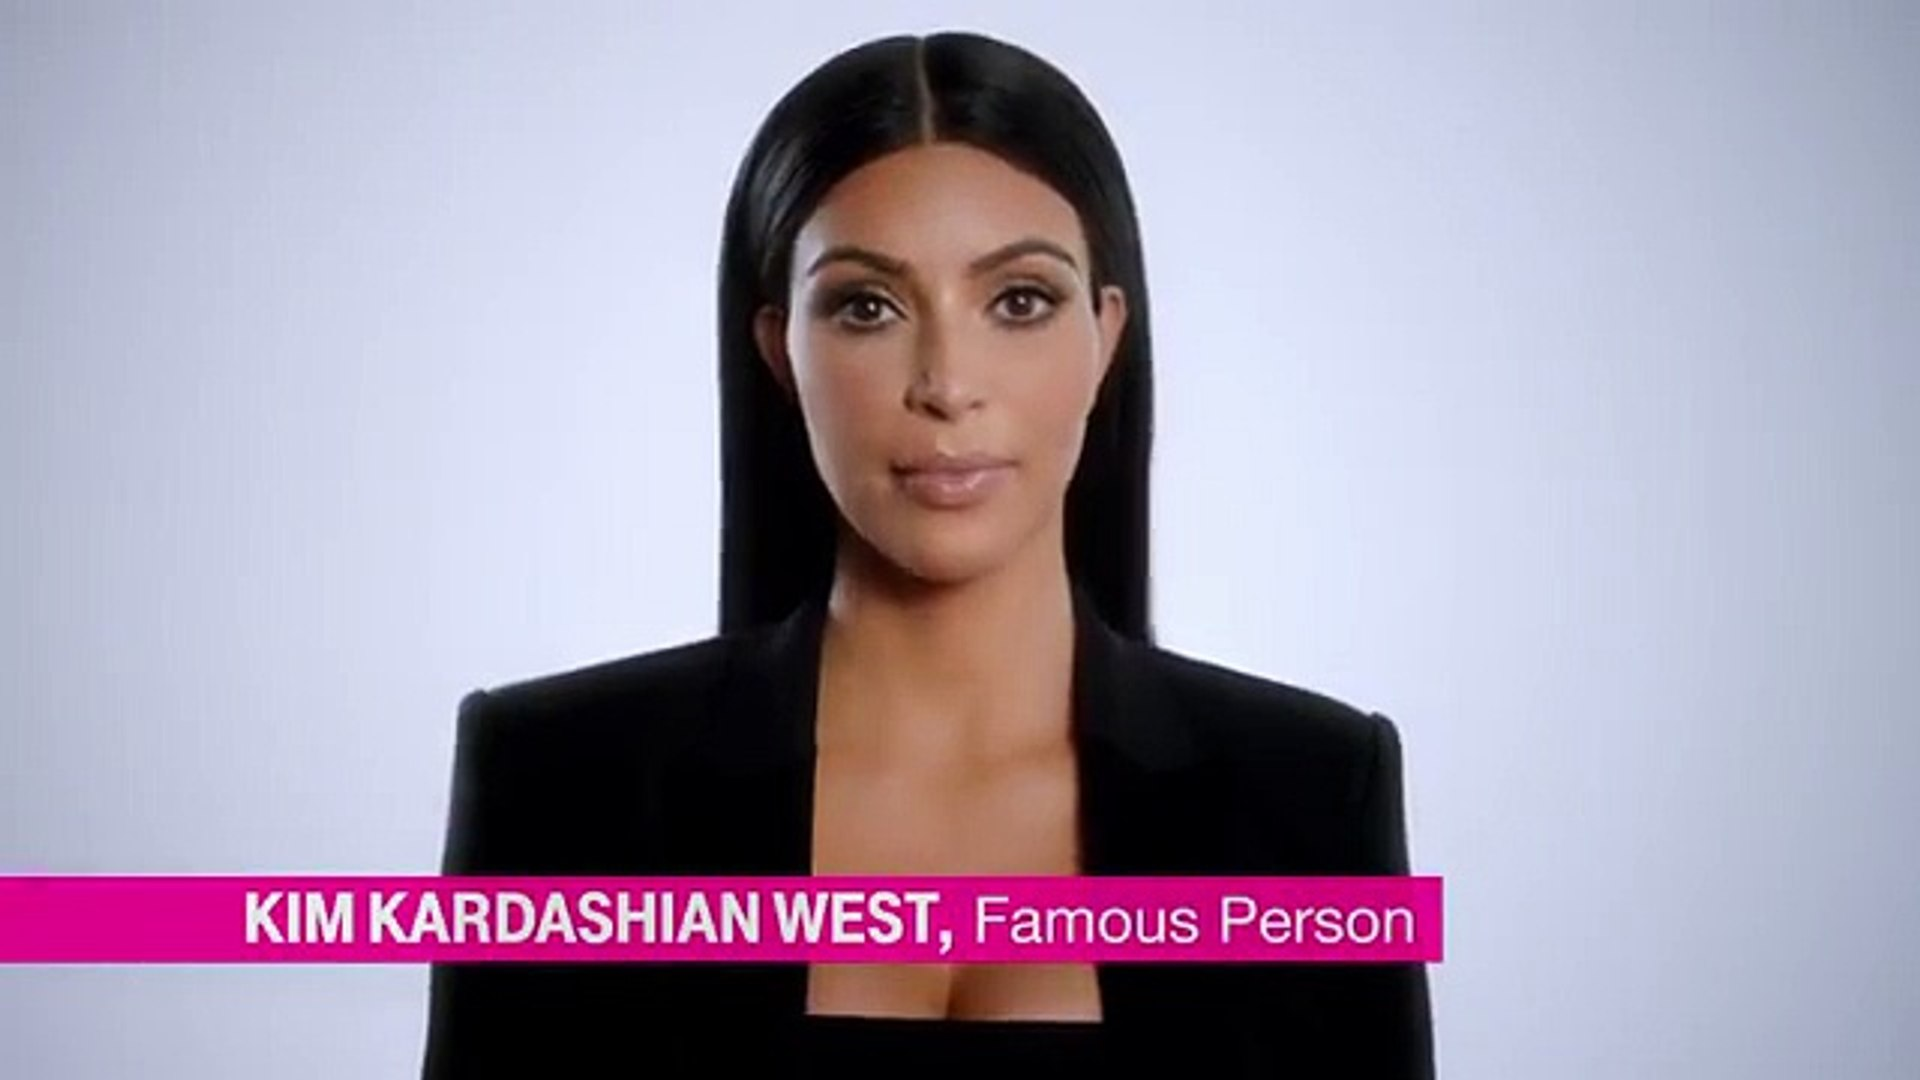 Kim Kardashian Superbowl advert #KimsDataStash T Mobile Commercial